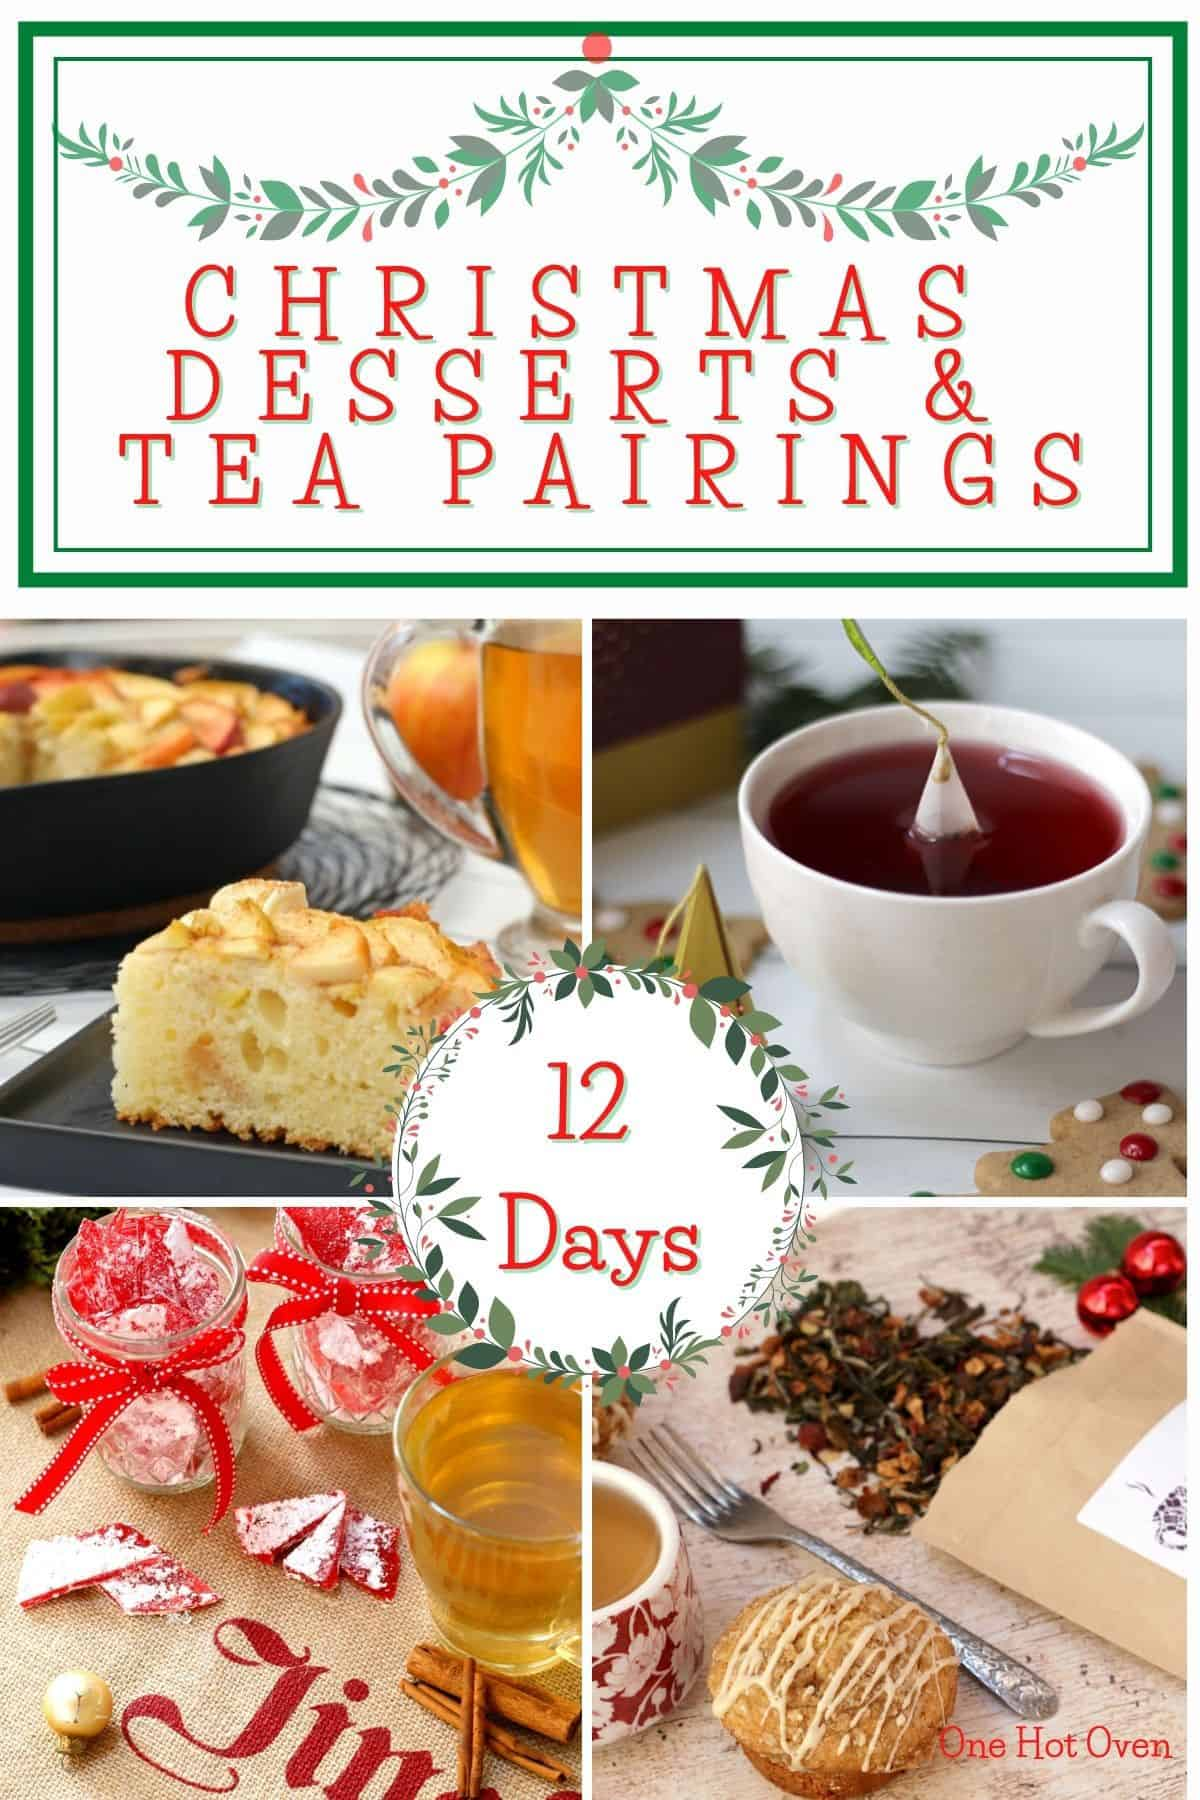 A collage of Christmas Desserts and Teas